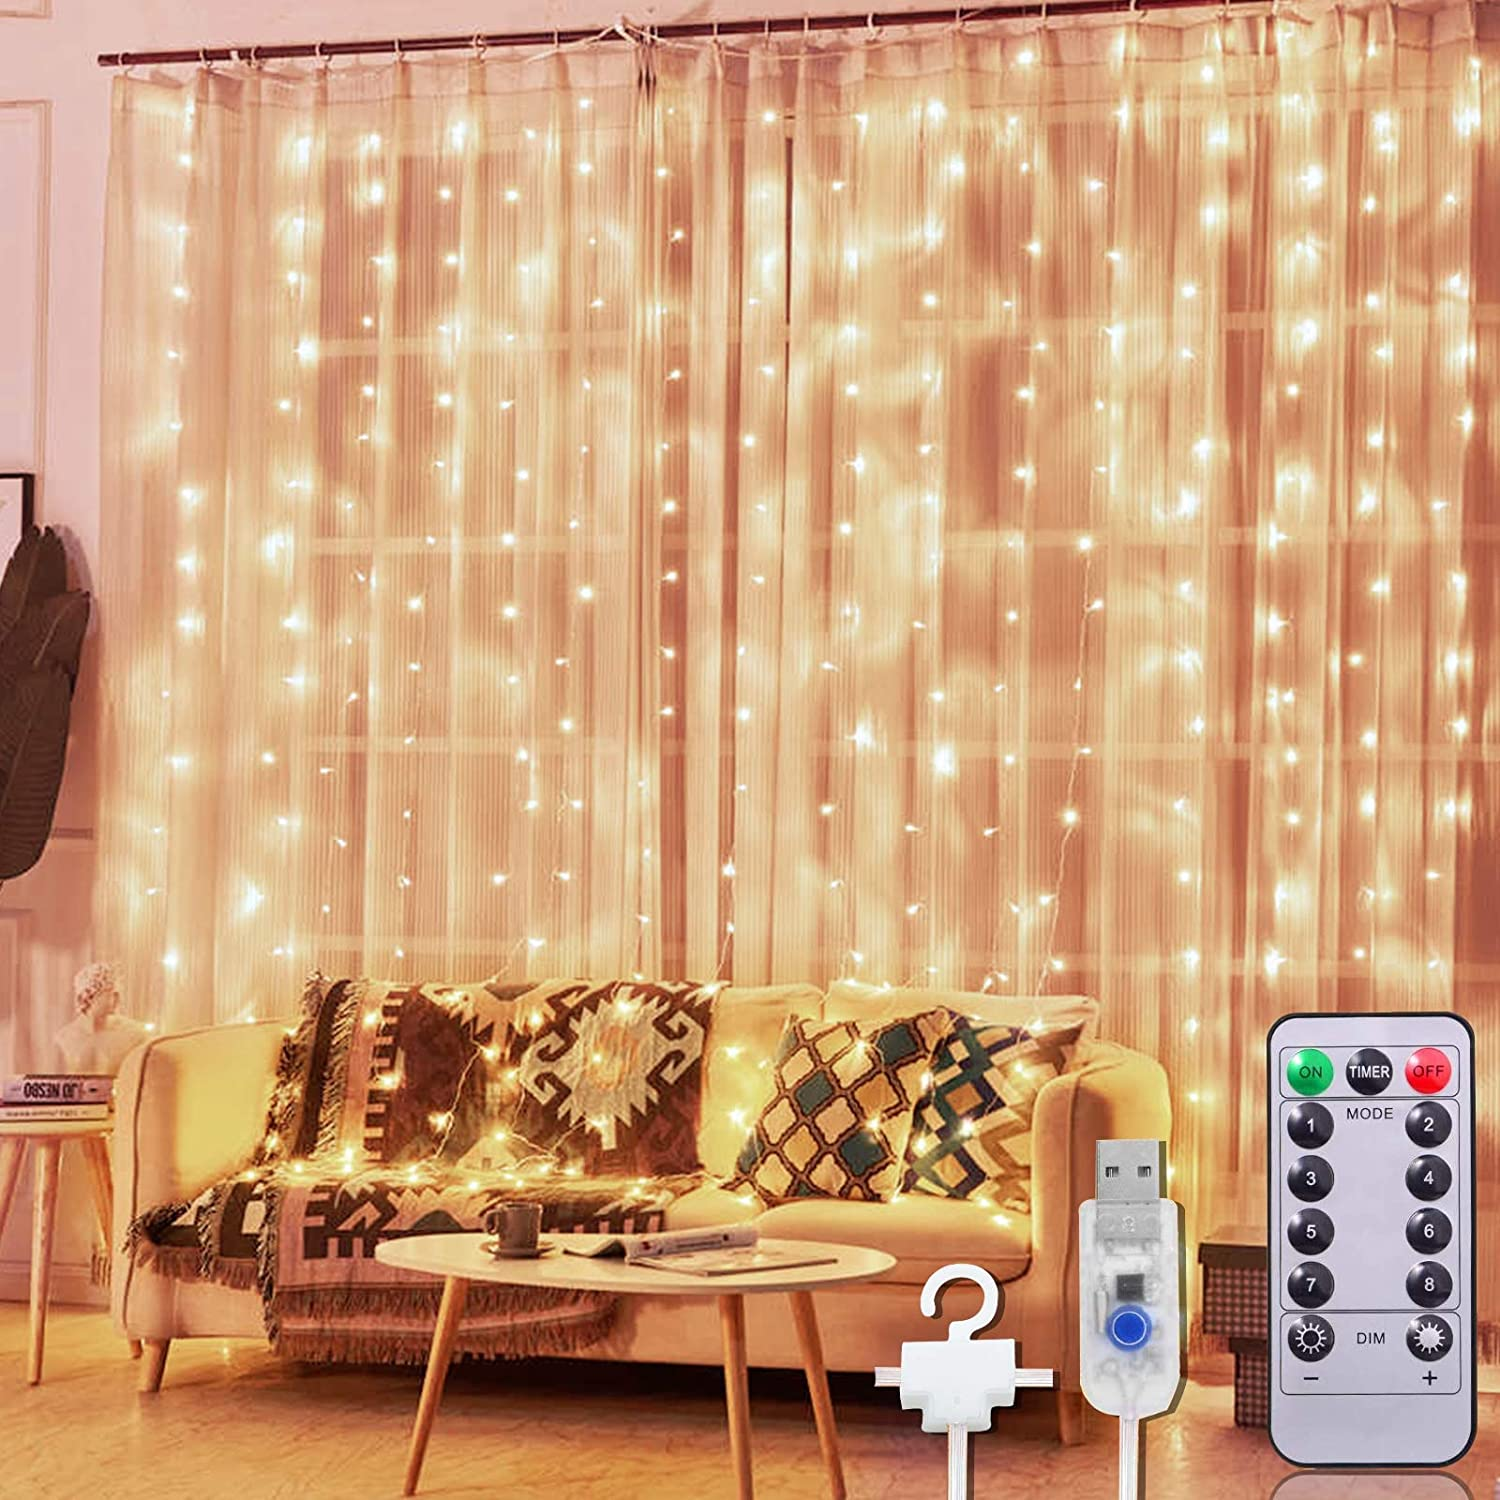 TURNMEON 300 LED Curtain String Light Christmas Decoration, 10 Ft USB Fairy Lights Waterproof 8 Light Modes Remote Control Xmas Holiday Decorations Home Bedroom Wall Outdoor Indoor (Warm White)